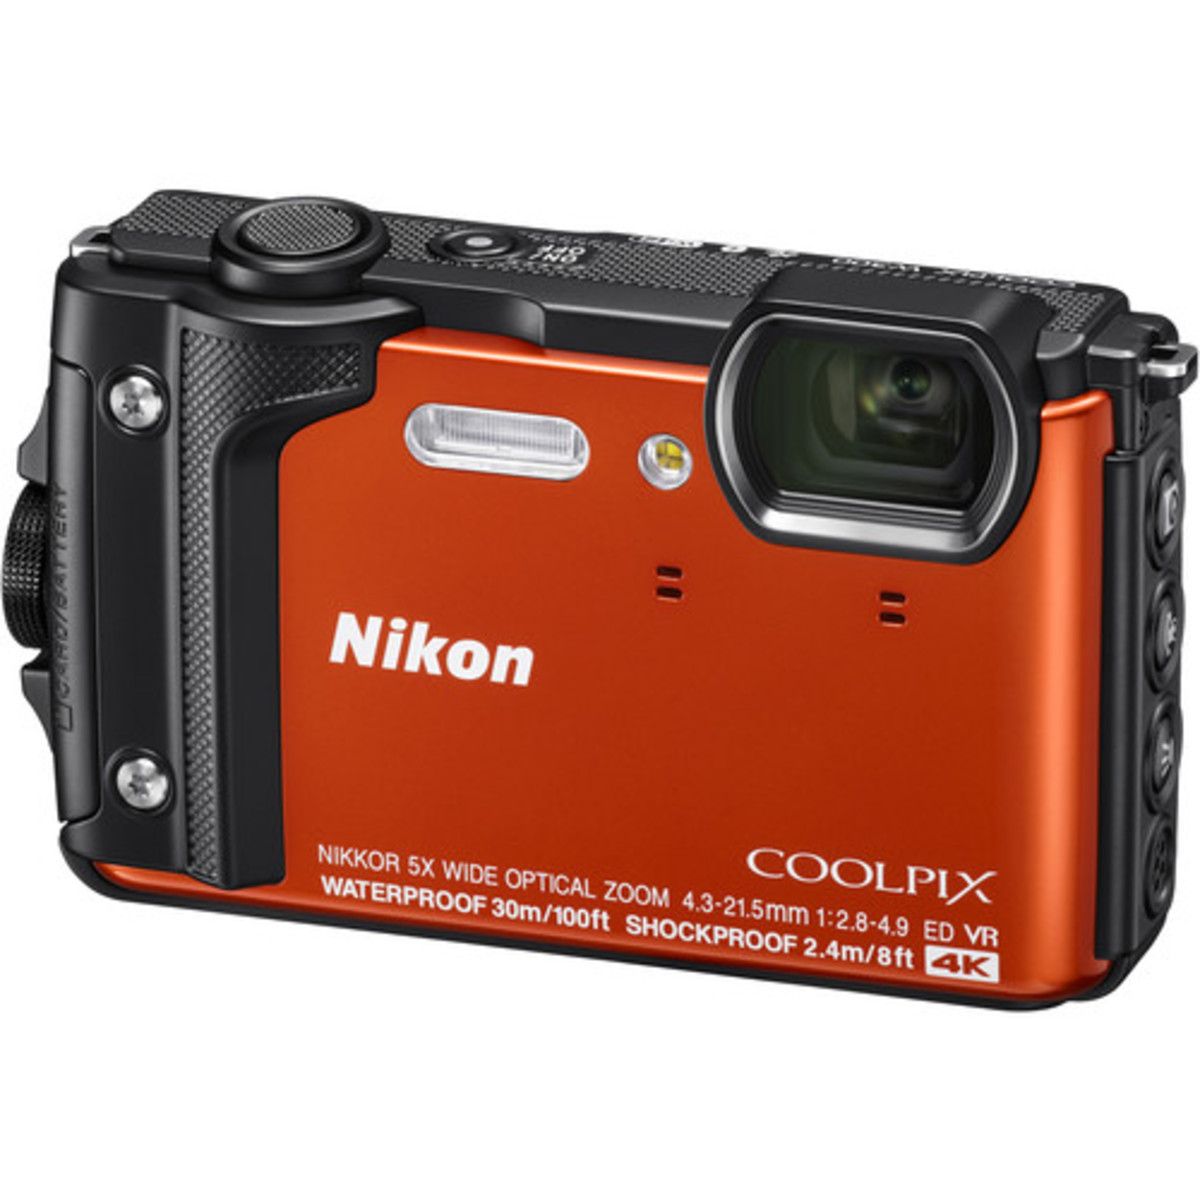 COOLPIX W300 Digital Camera - [Orange] (Parallel imported)